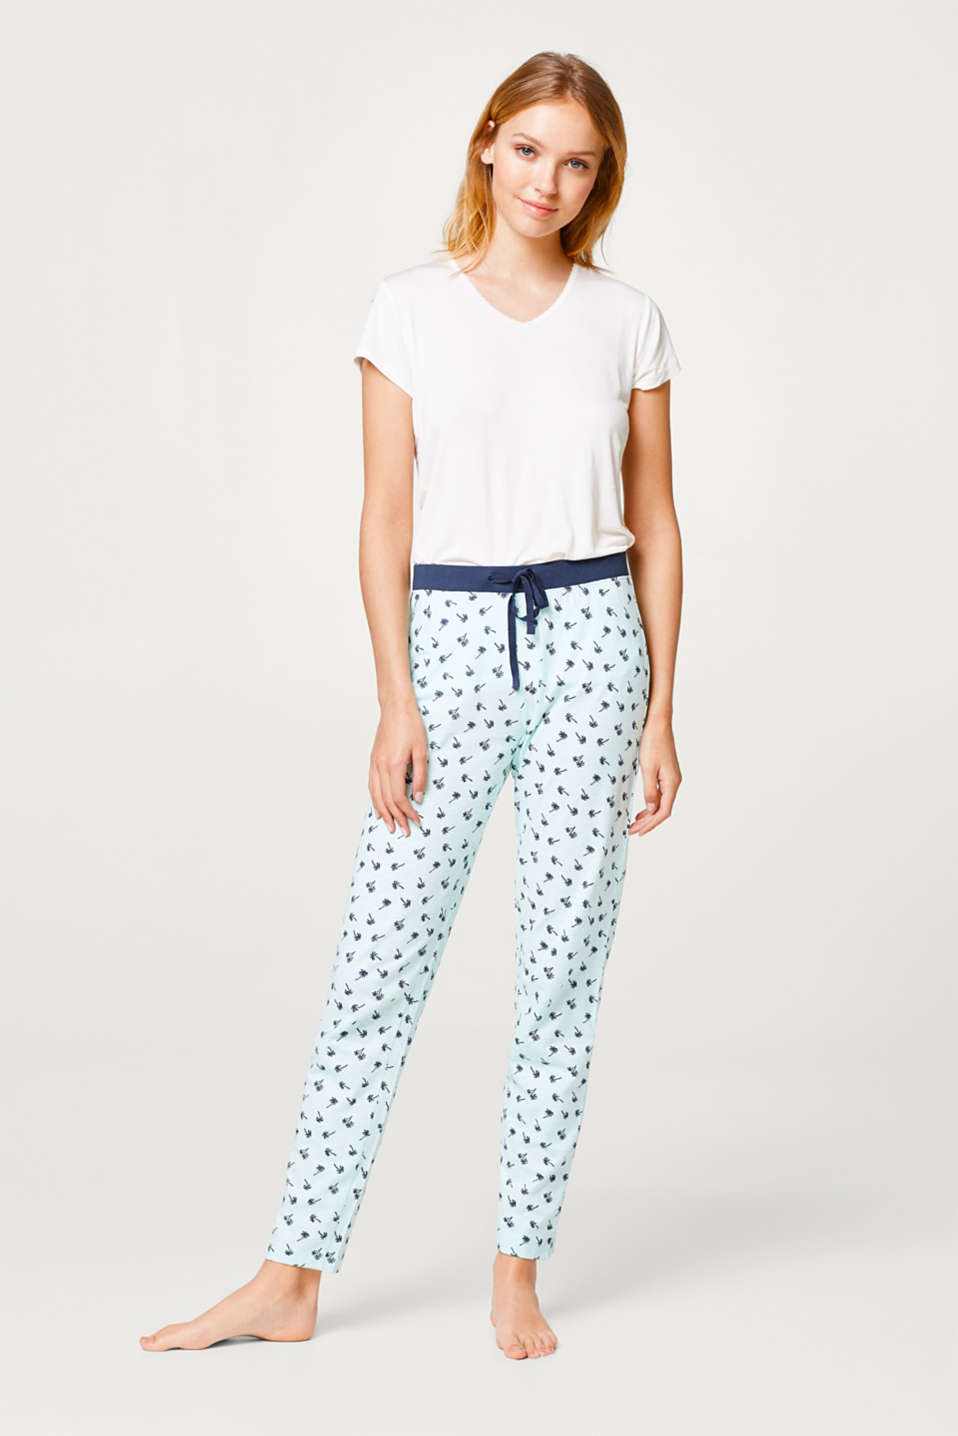 Esprit - Slub jersey trousers with a print, 100% cotton